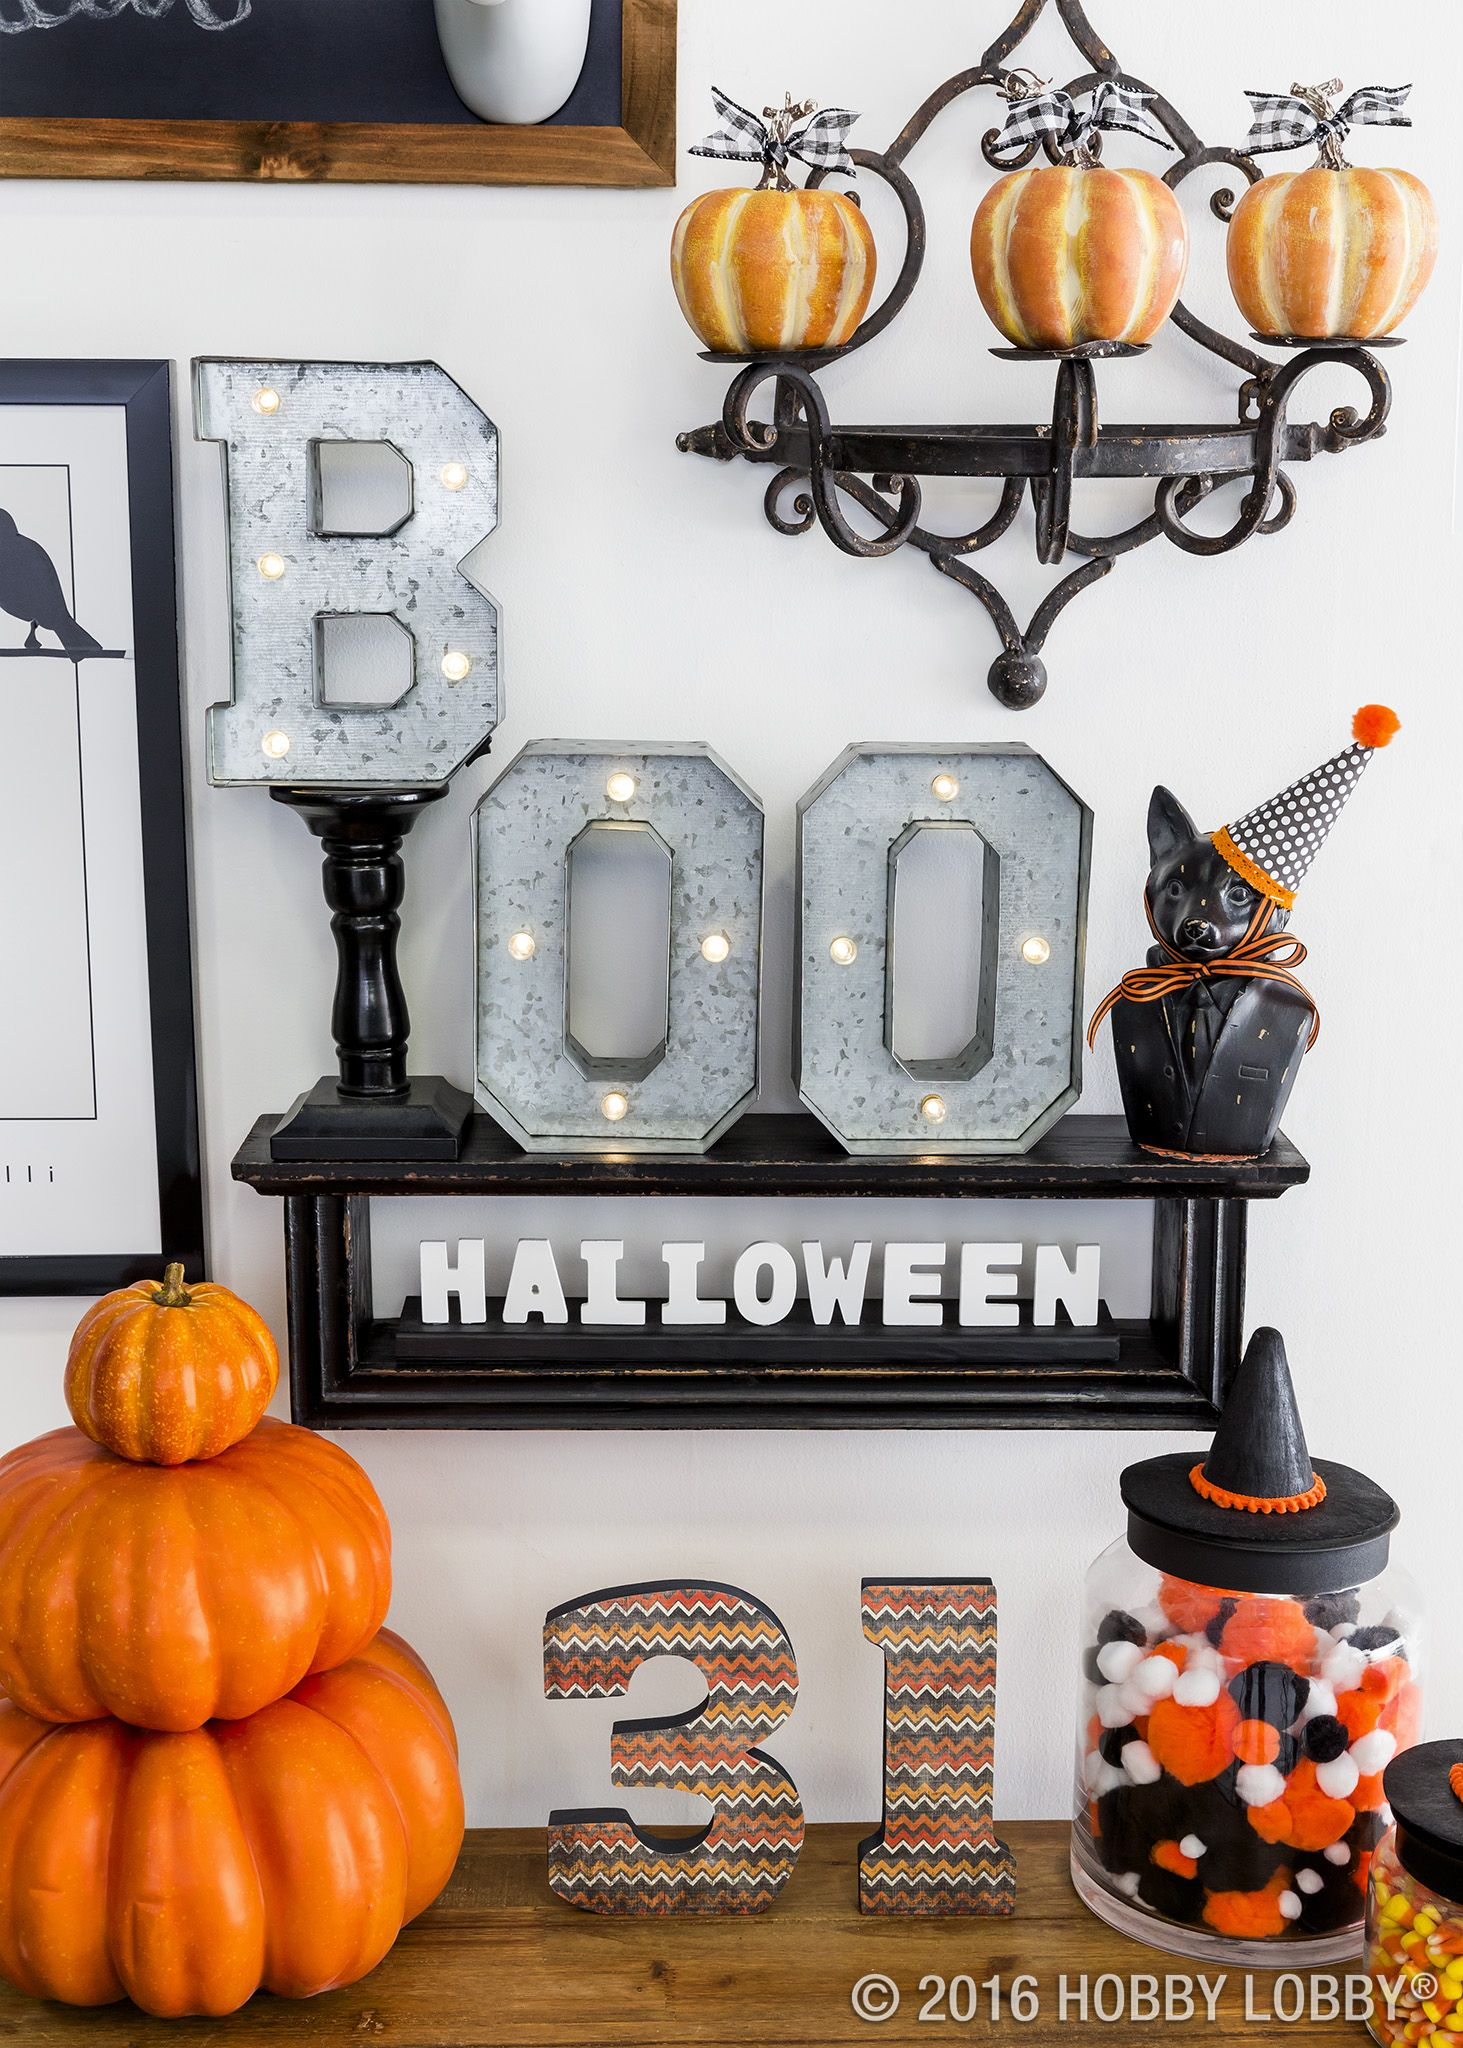 Take your Halloween decor to the next level! Just add a bit of